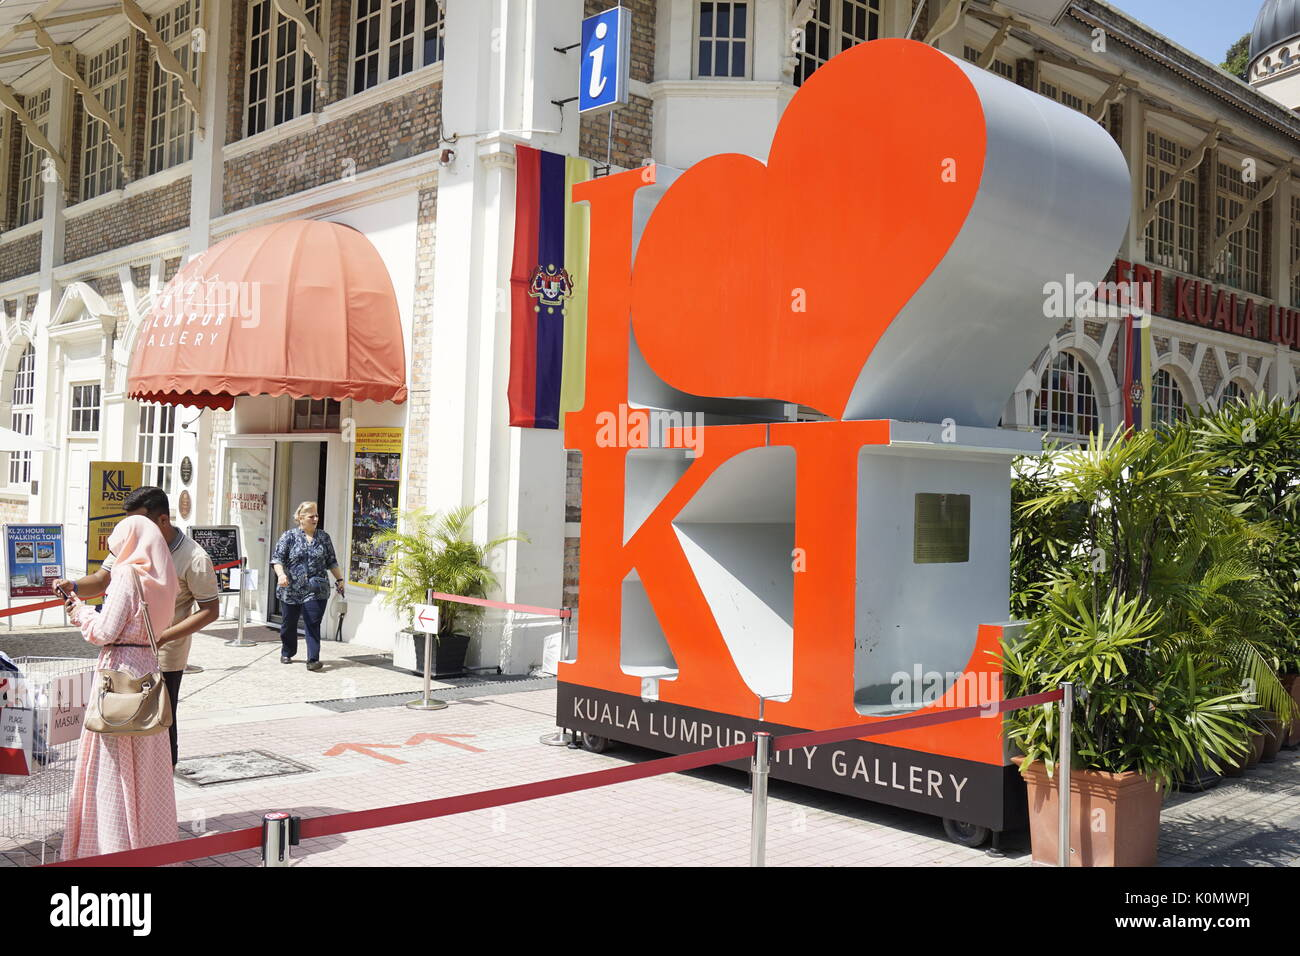 I Love KL sculpture at Kuala Lumpur City Gallery - Stock Image